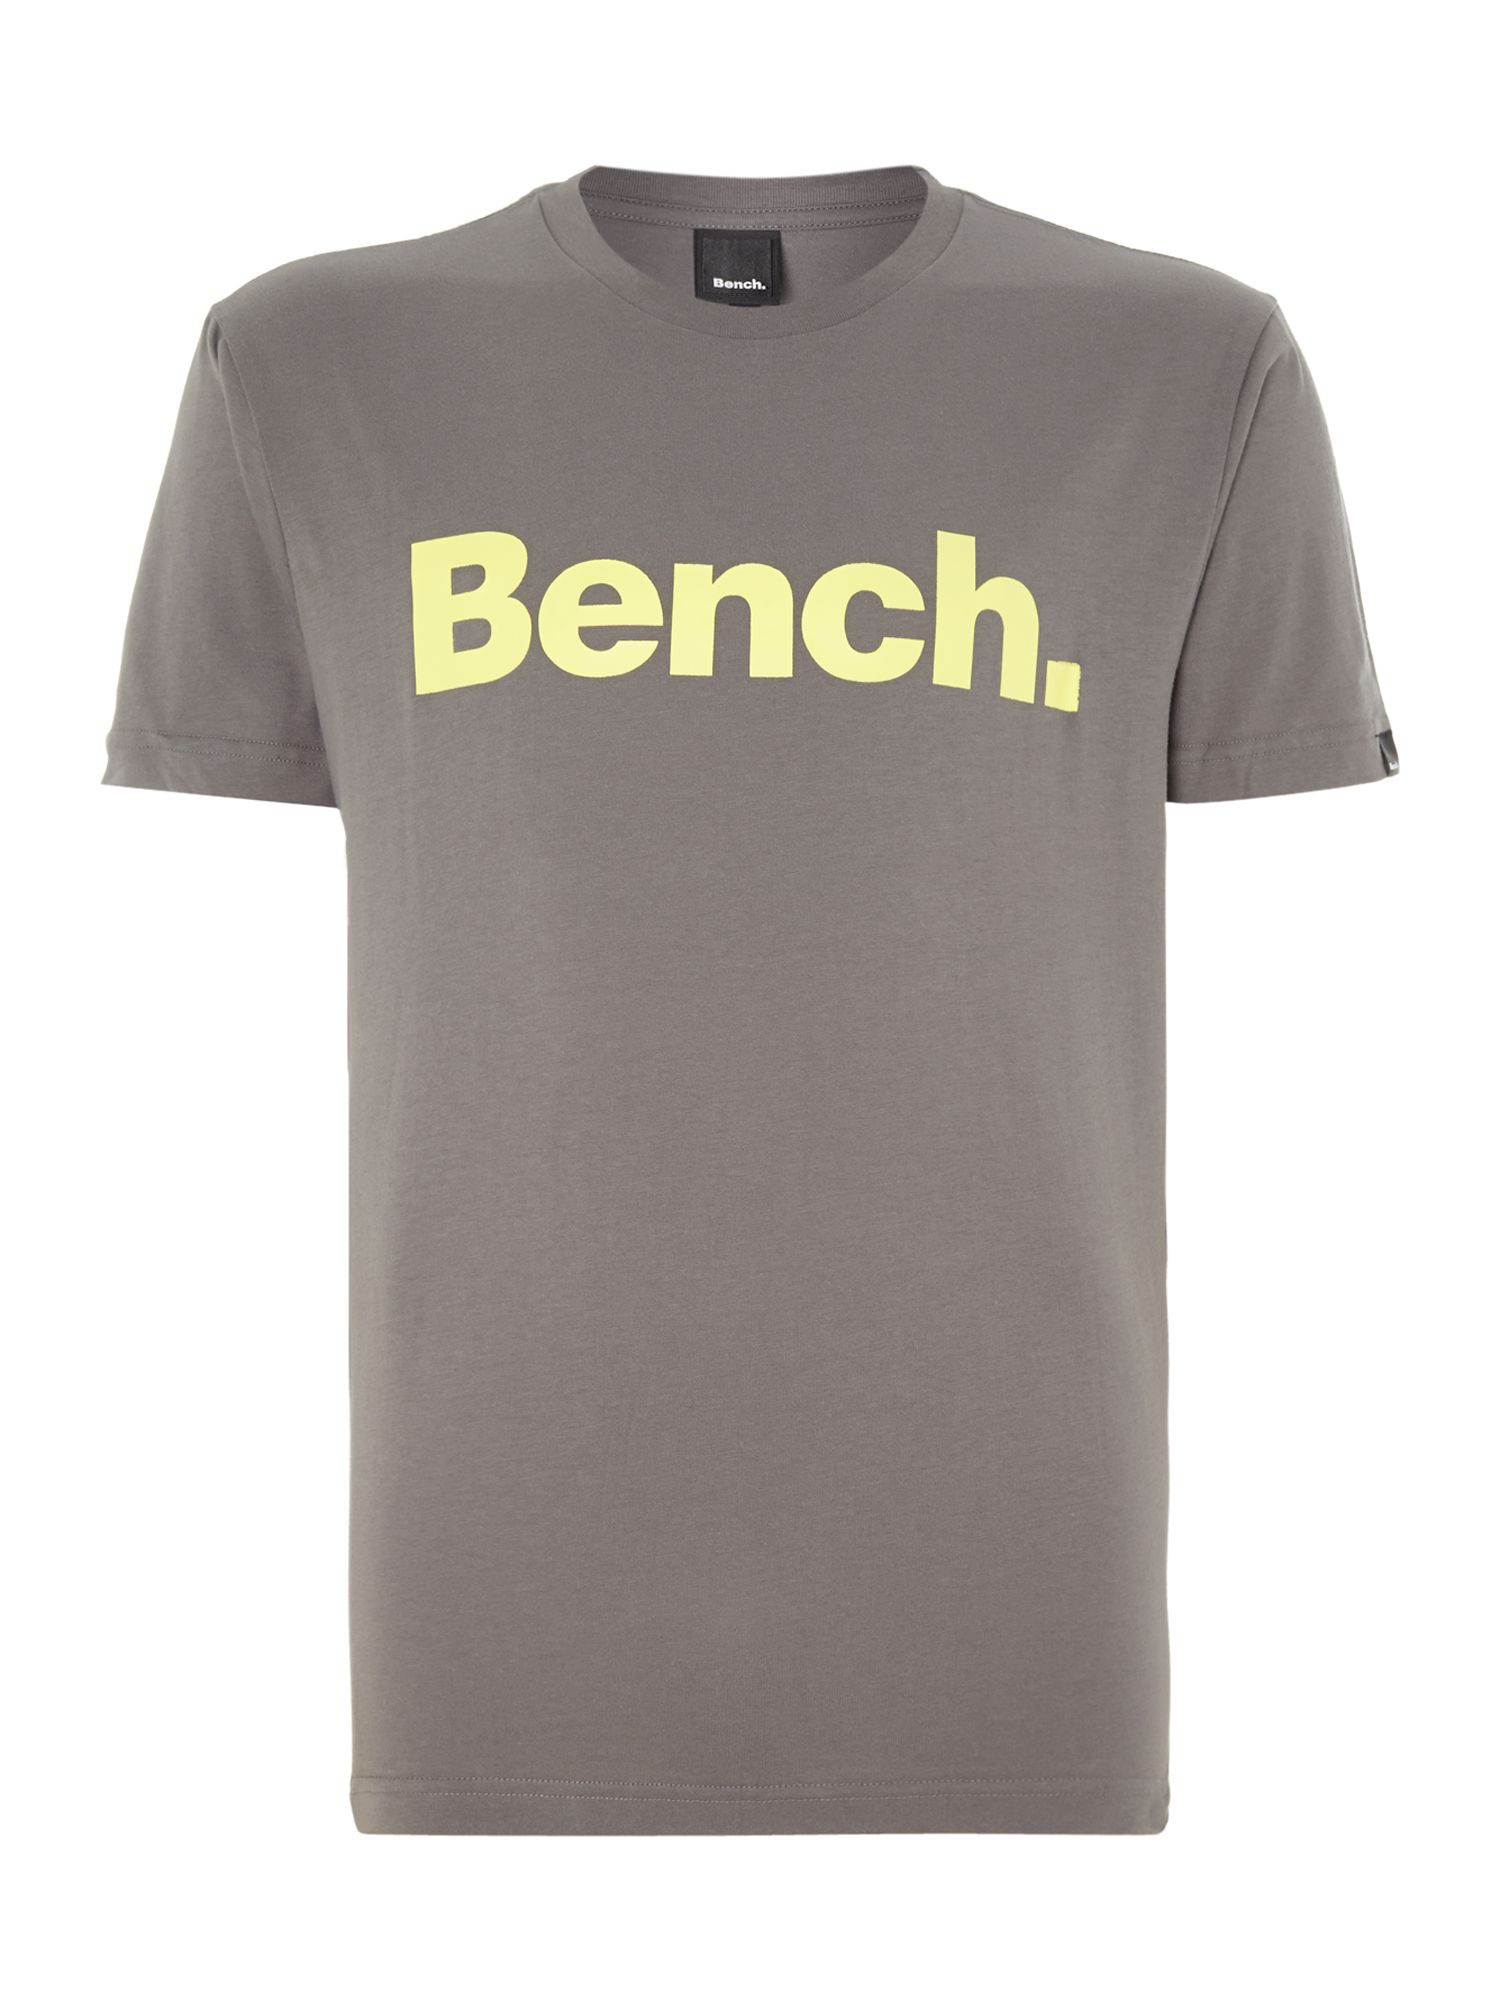 Bench logo t shirt